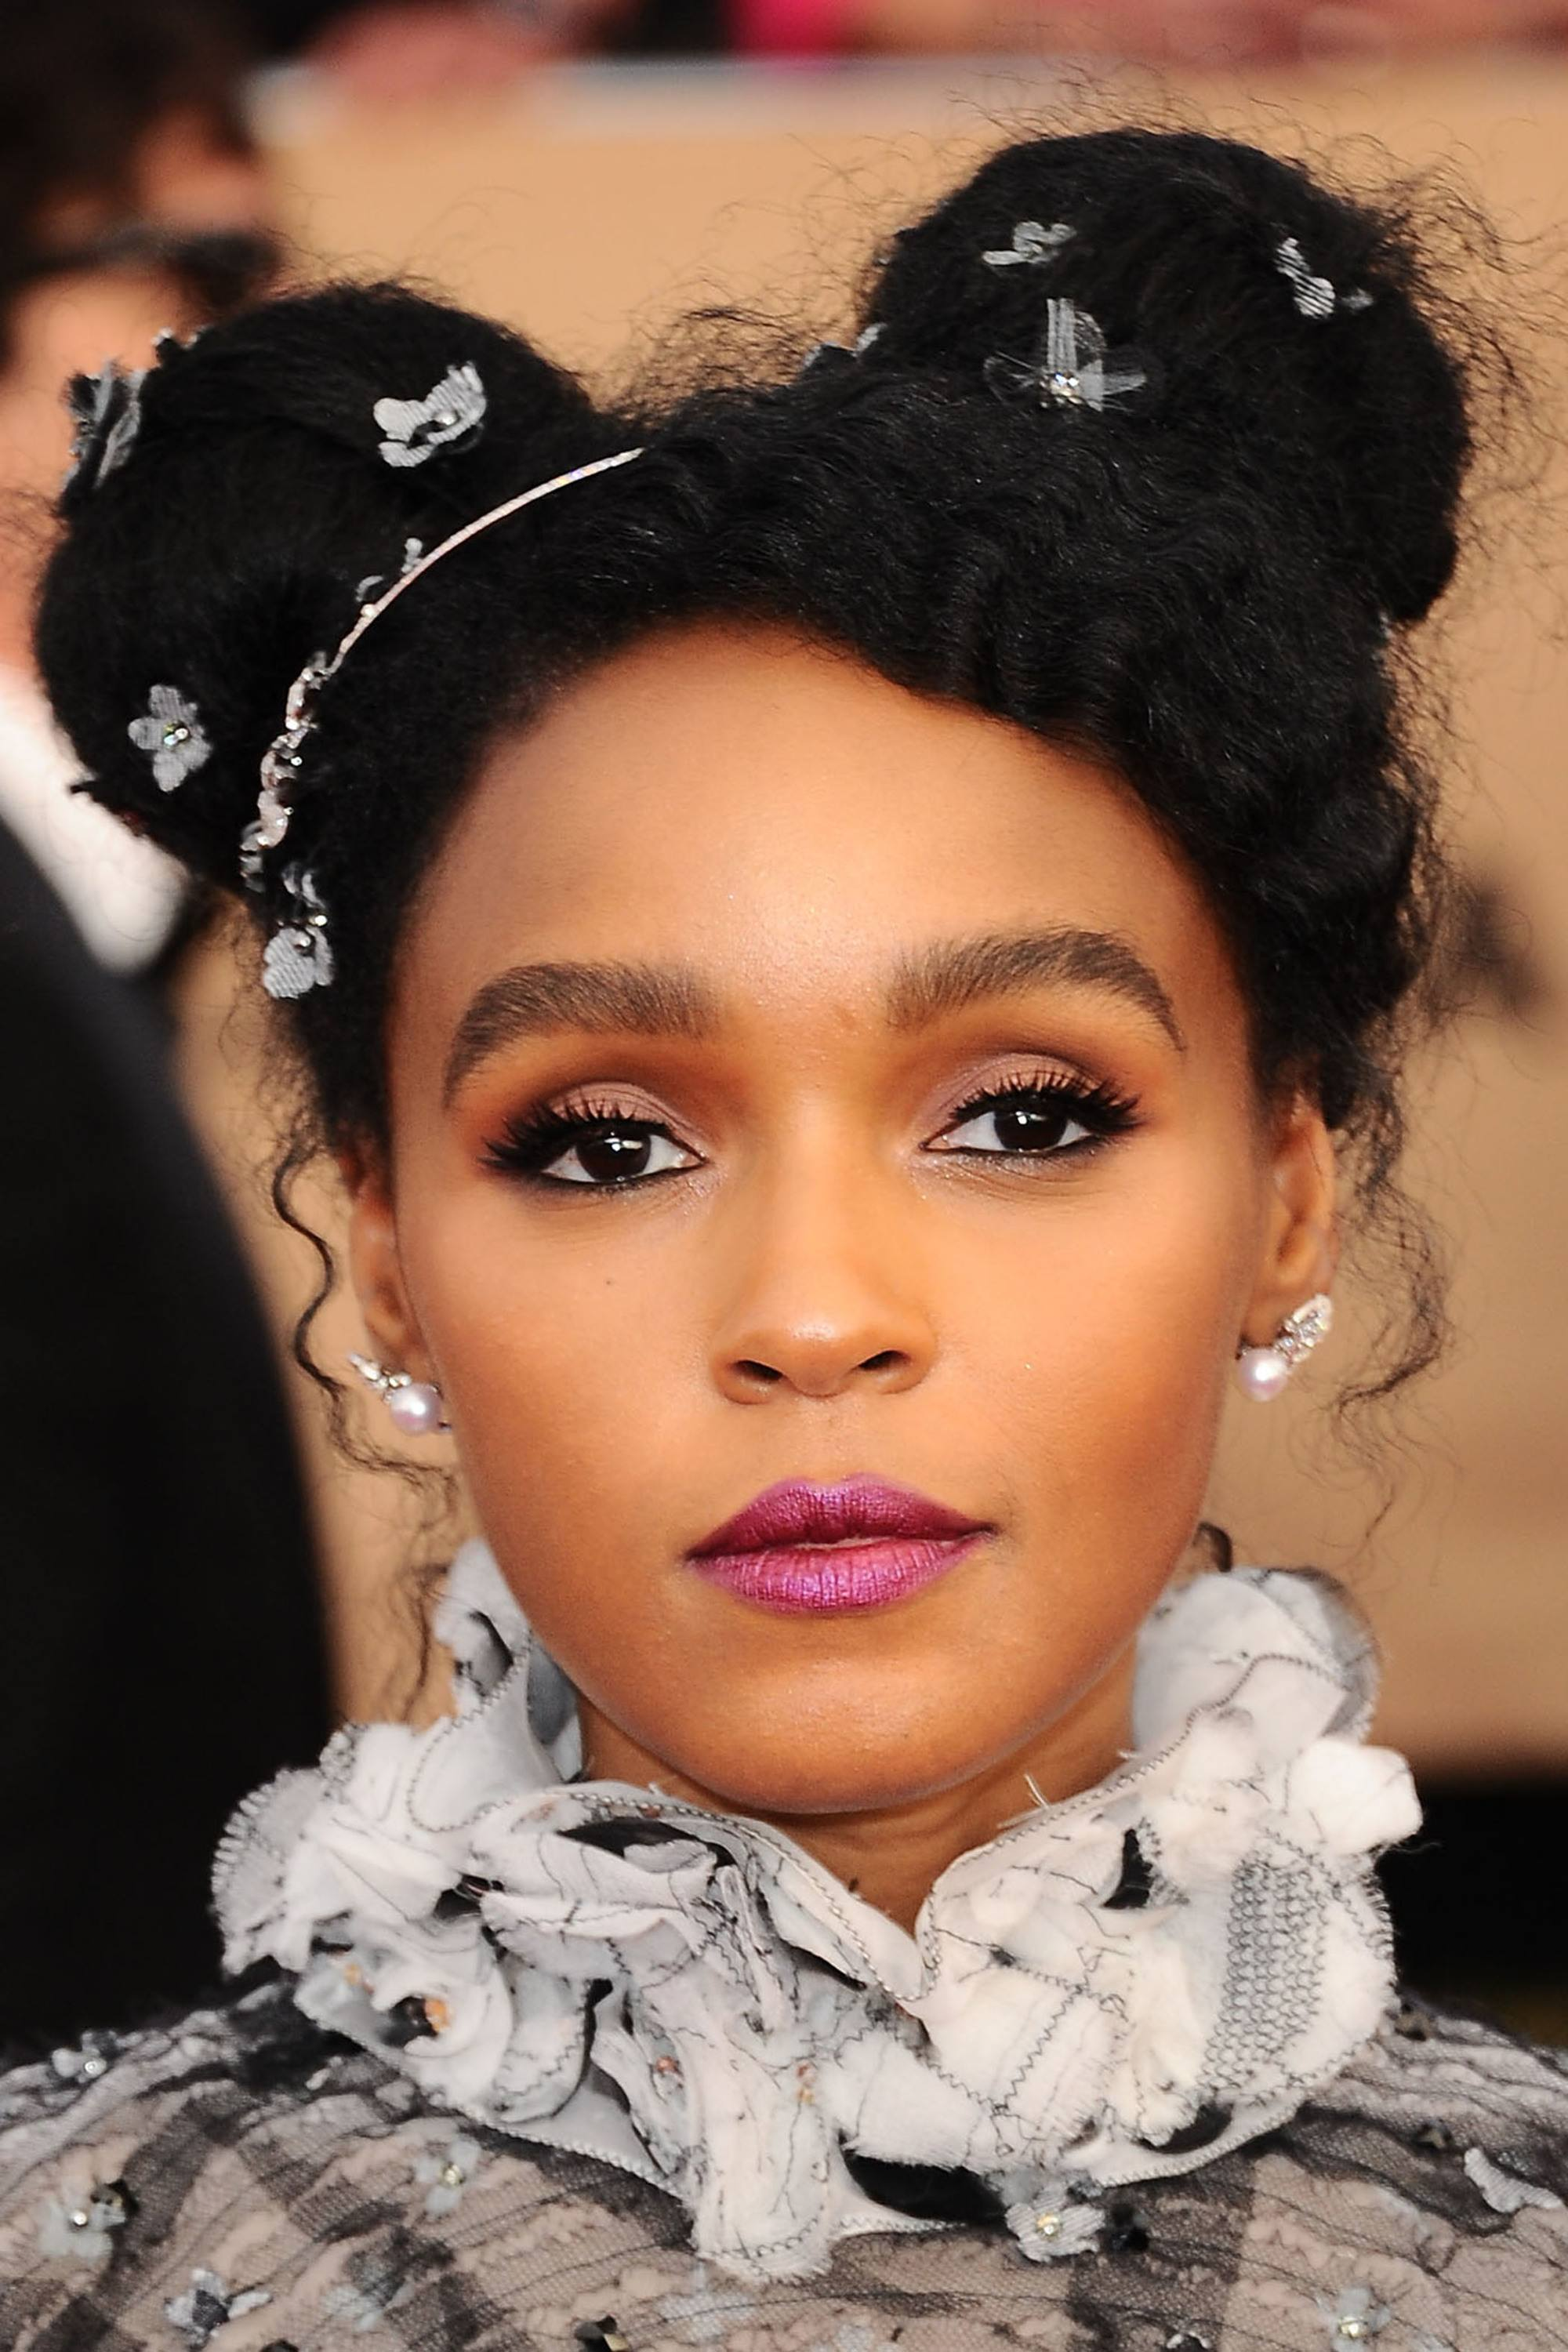 janelle monae at industry red carpet event with dark brown hair in space buns with jewelled accessories